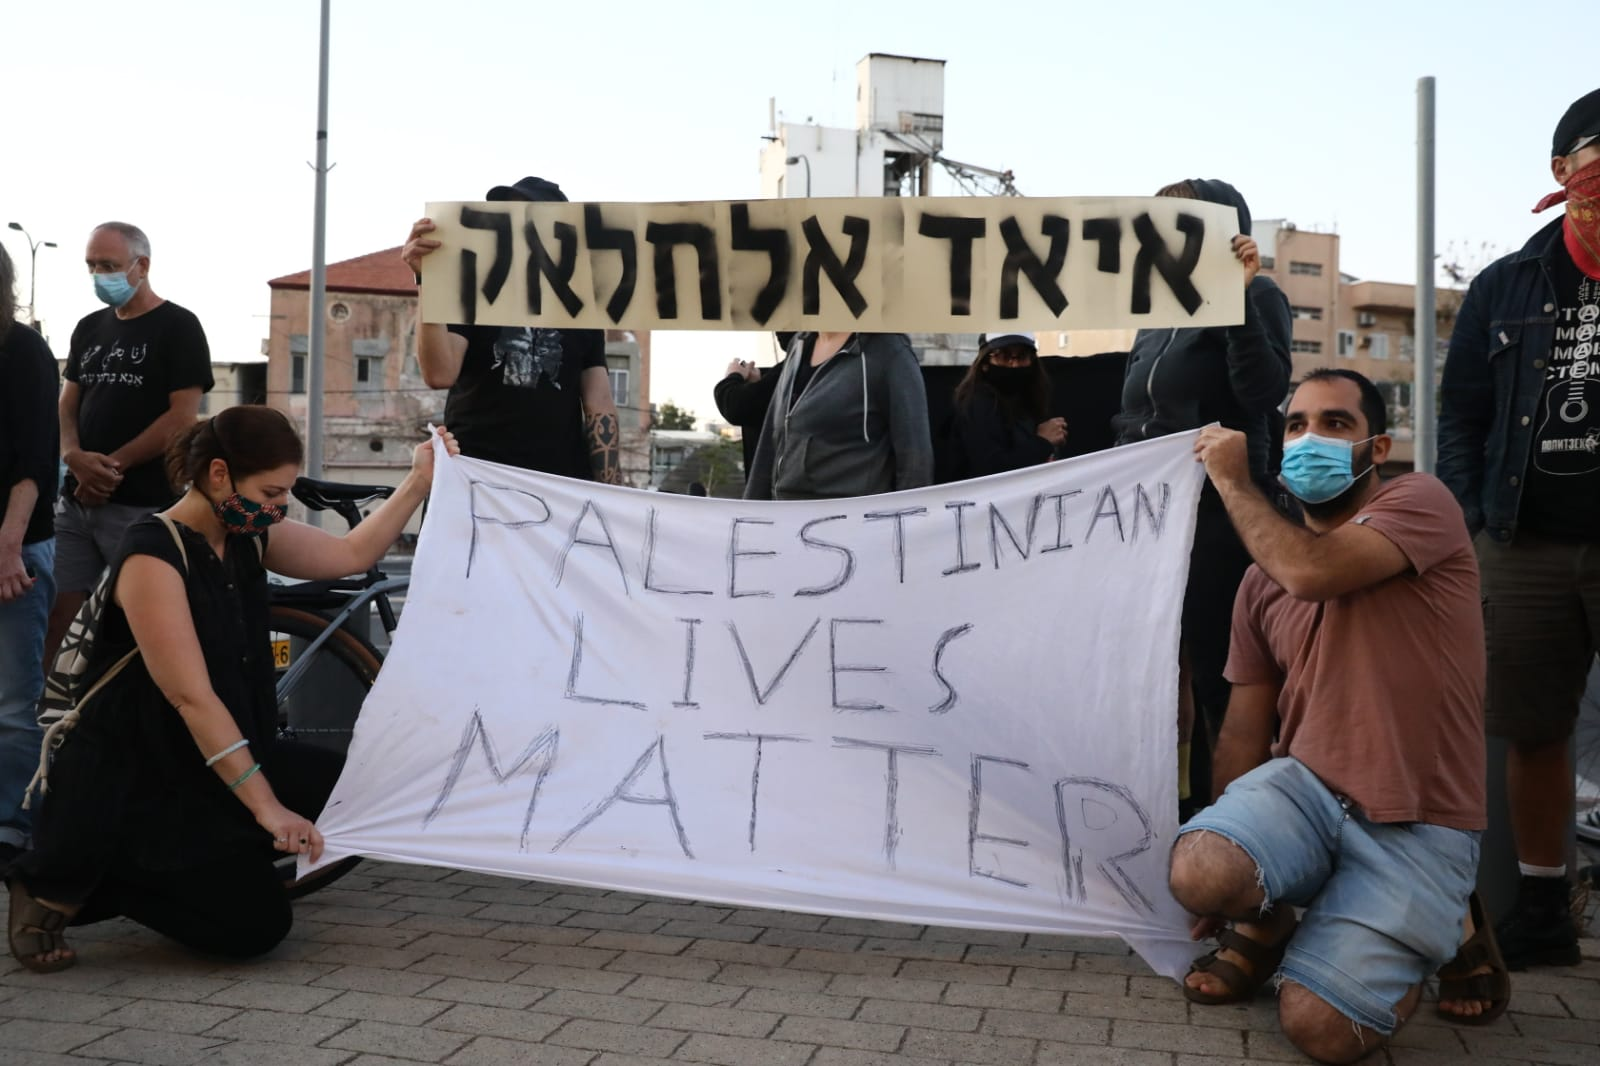 Israeli protesters demonstrate outside the Tel Aviv police headquarters against the killing of Iyad Hallak as well as increased police brutality against African asylum seekers in south Tel Aviv, May 30, 2020. (Oren Ziv)